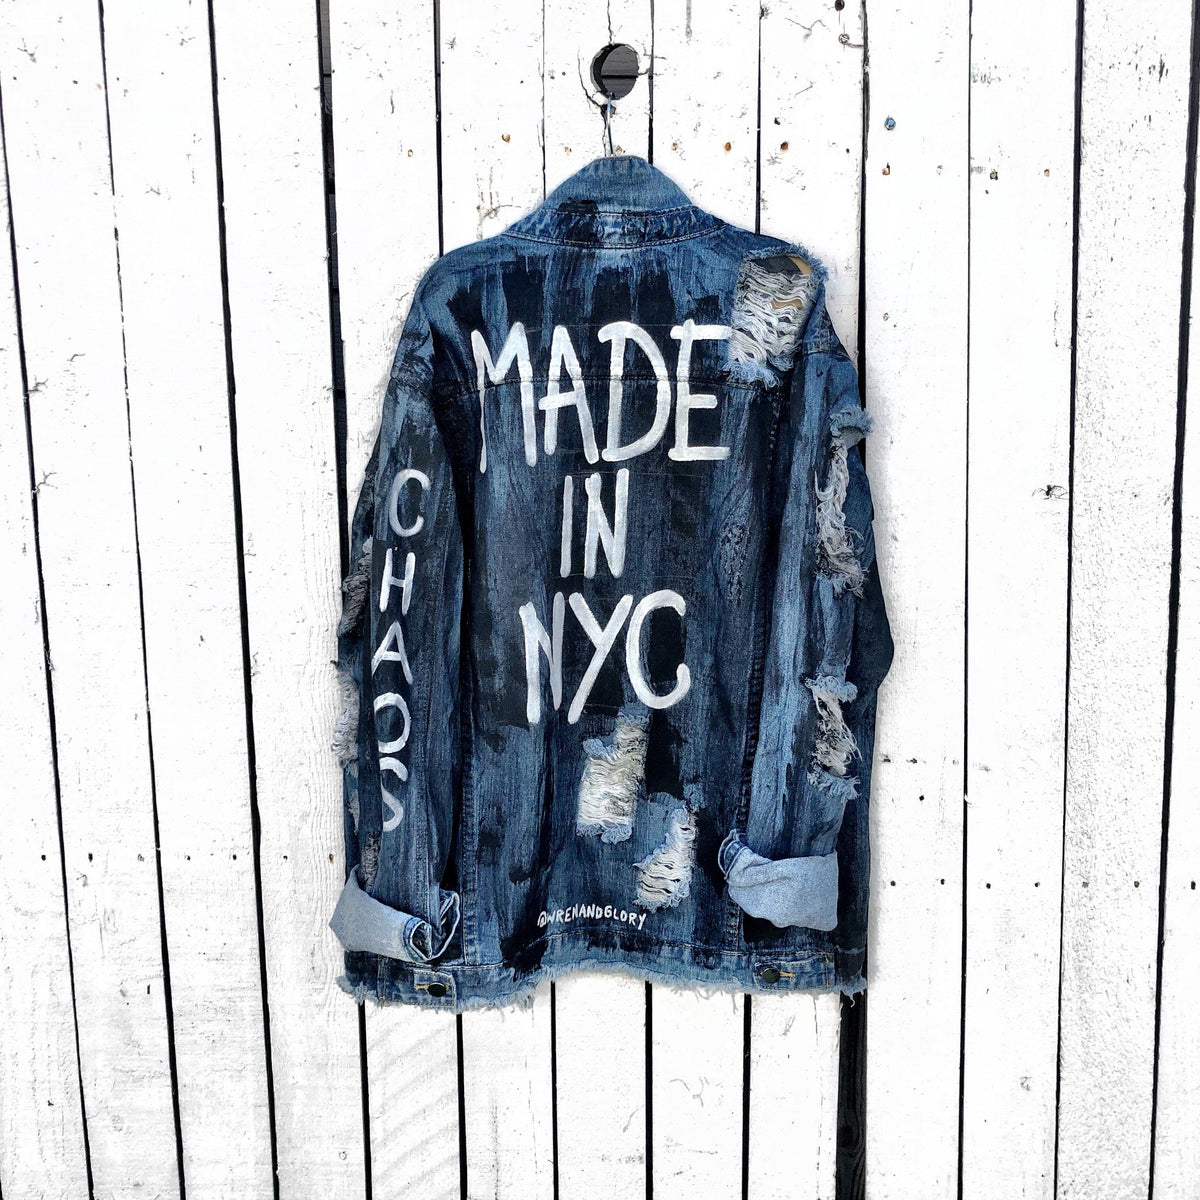 "Medium blue denim wash. Black base all over, with 'MADE IN NYC' painted on back in white. CHAOS painted down the arm in white. Assorted 1"" pins on bottom left, bottom pocket area. Signed @wrenandglory."